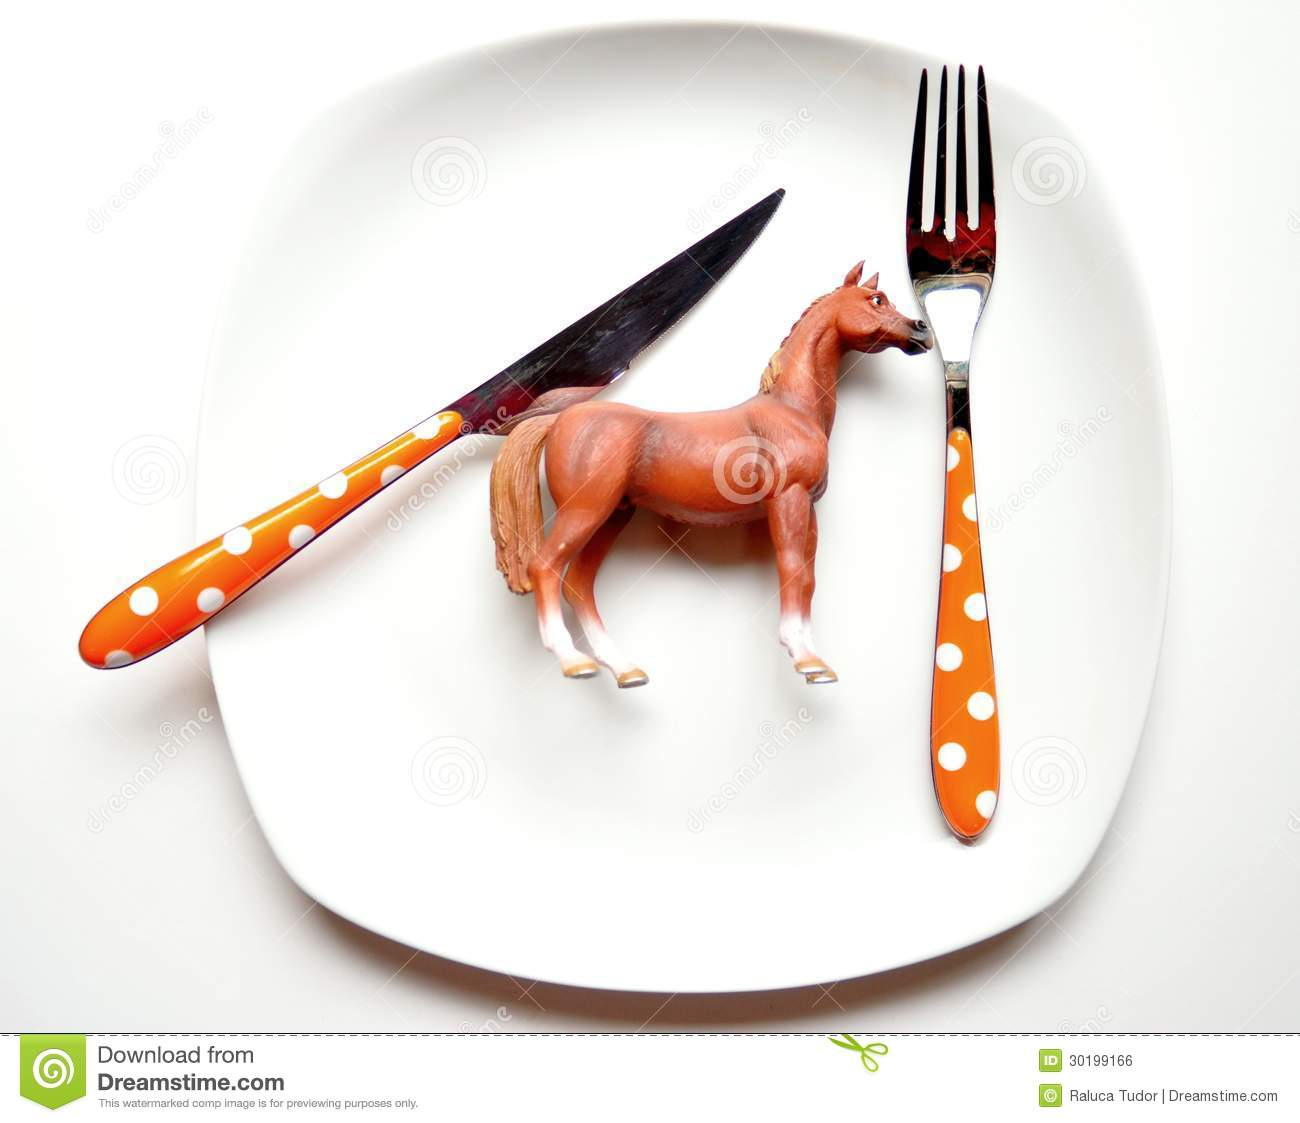 Euro Kitchen Design The Problem With Eating Horse Meat Royalty Free Stock